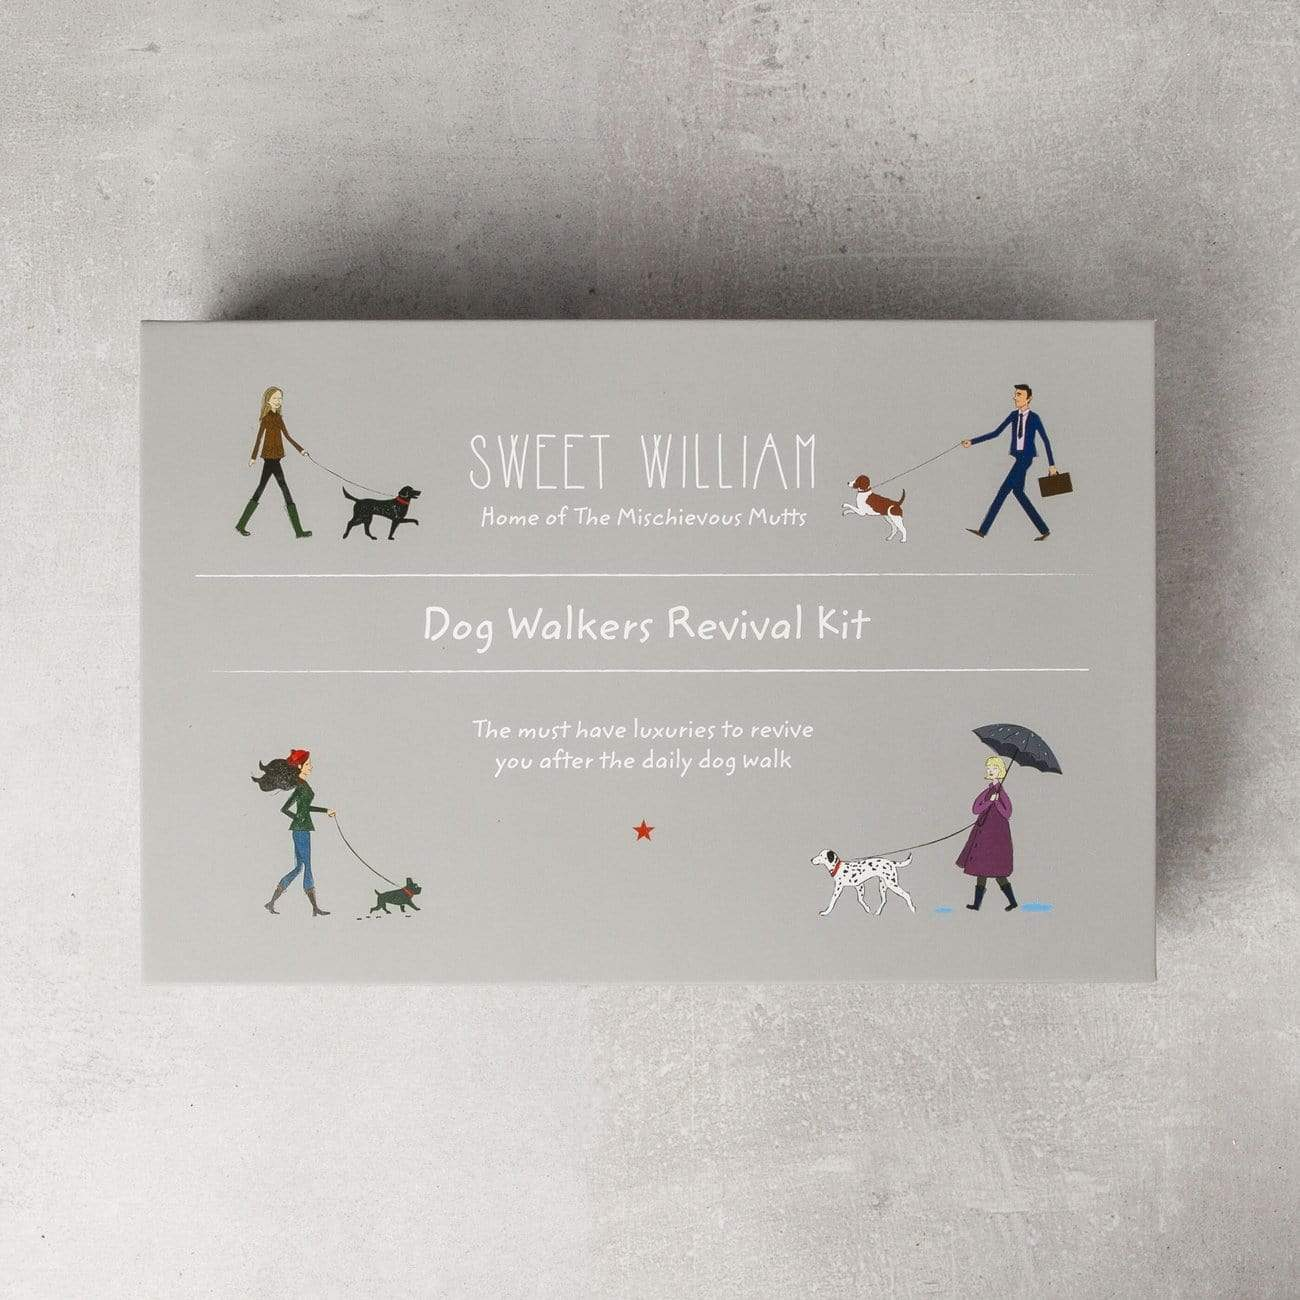 Sweet William Dog Walker - Revival Kit